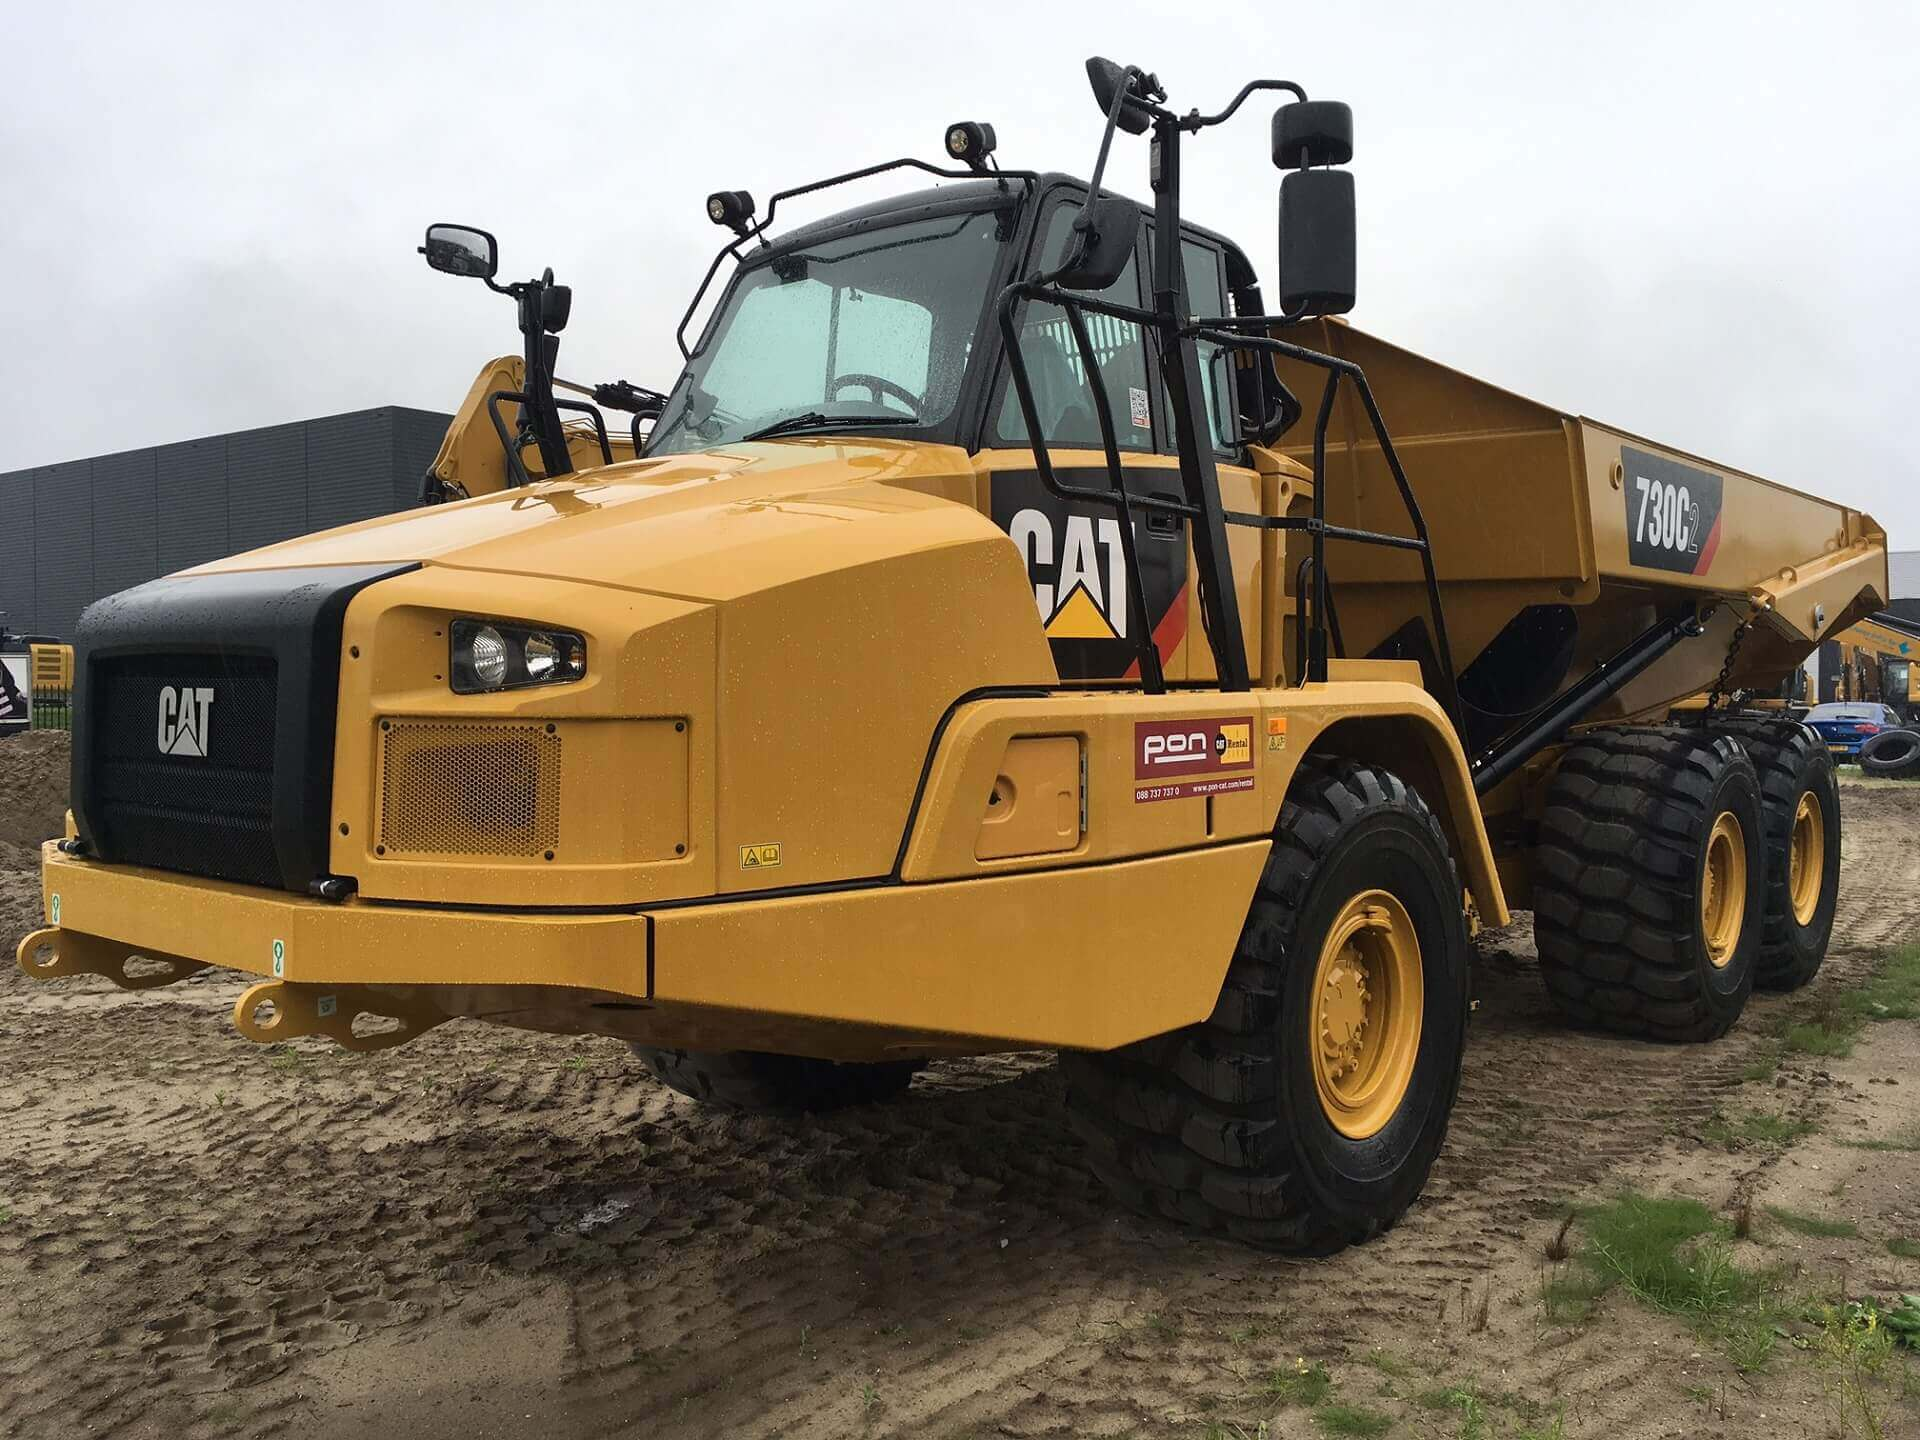 Rental - Productgroep - Dumpers - Cat 730C2.JPG